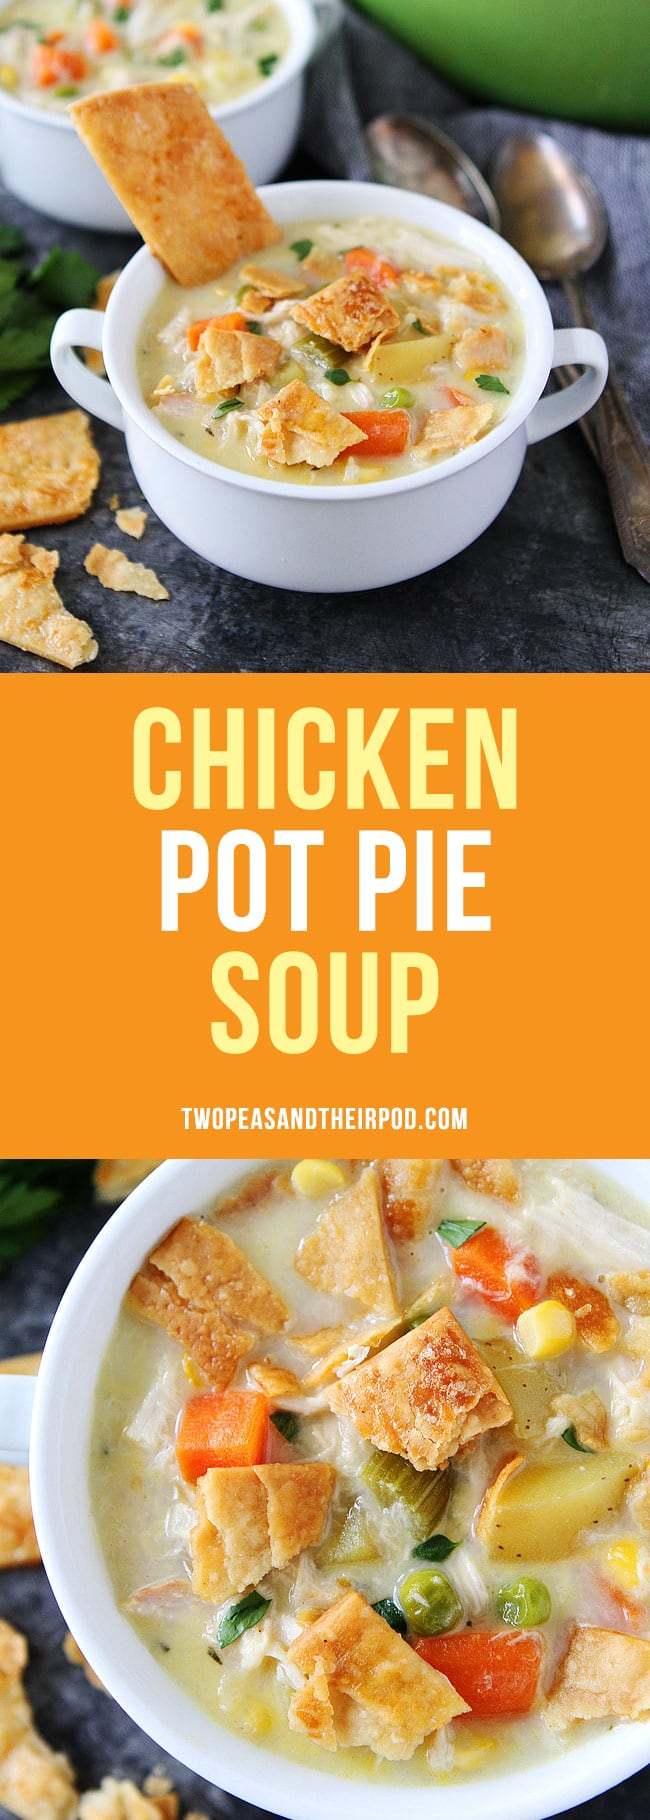 Chicken Pot Pie Soup tastes just like chicken pot pie but SO much easier. Use rotisserie chicken for a super easy dinner! #chicken #chickenrecipes #soup #dinner #leftovers